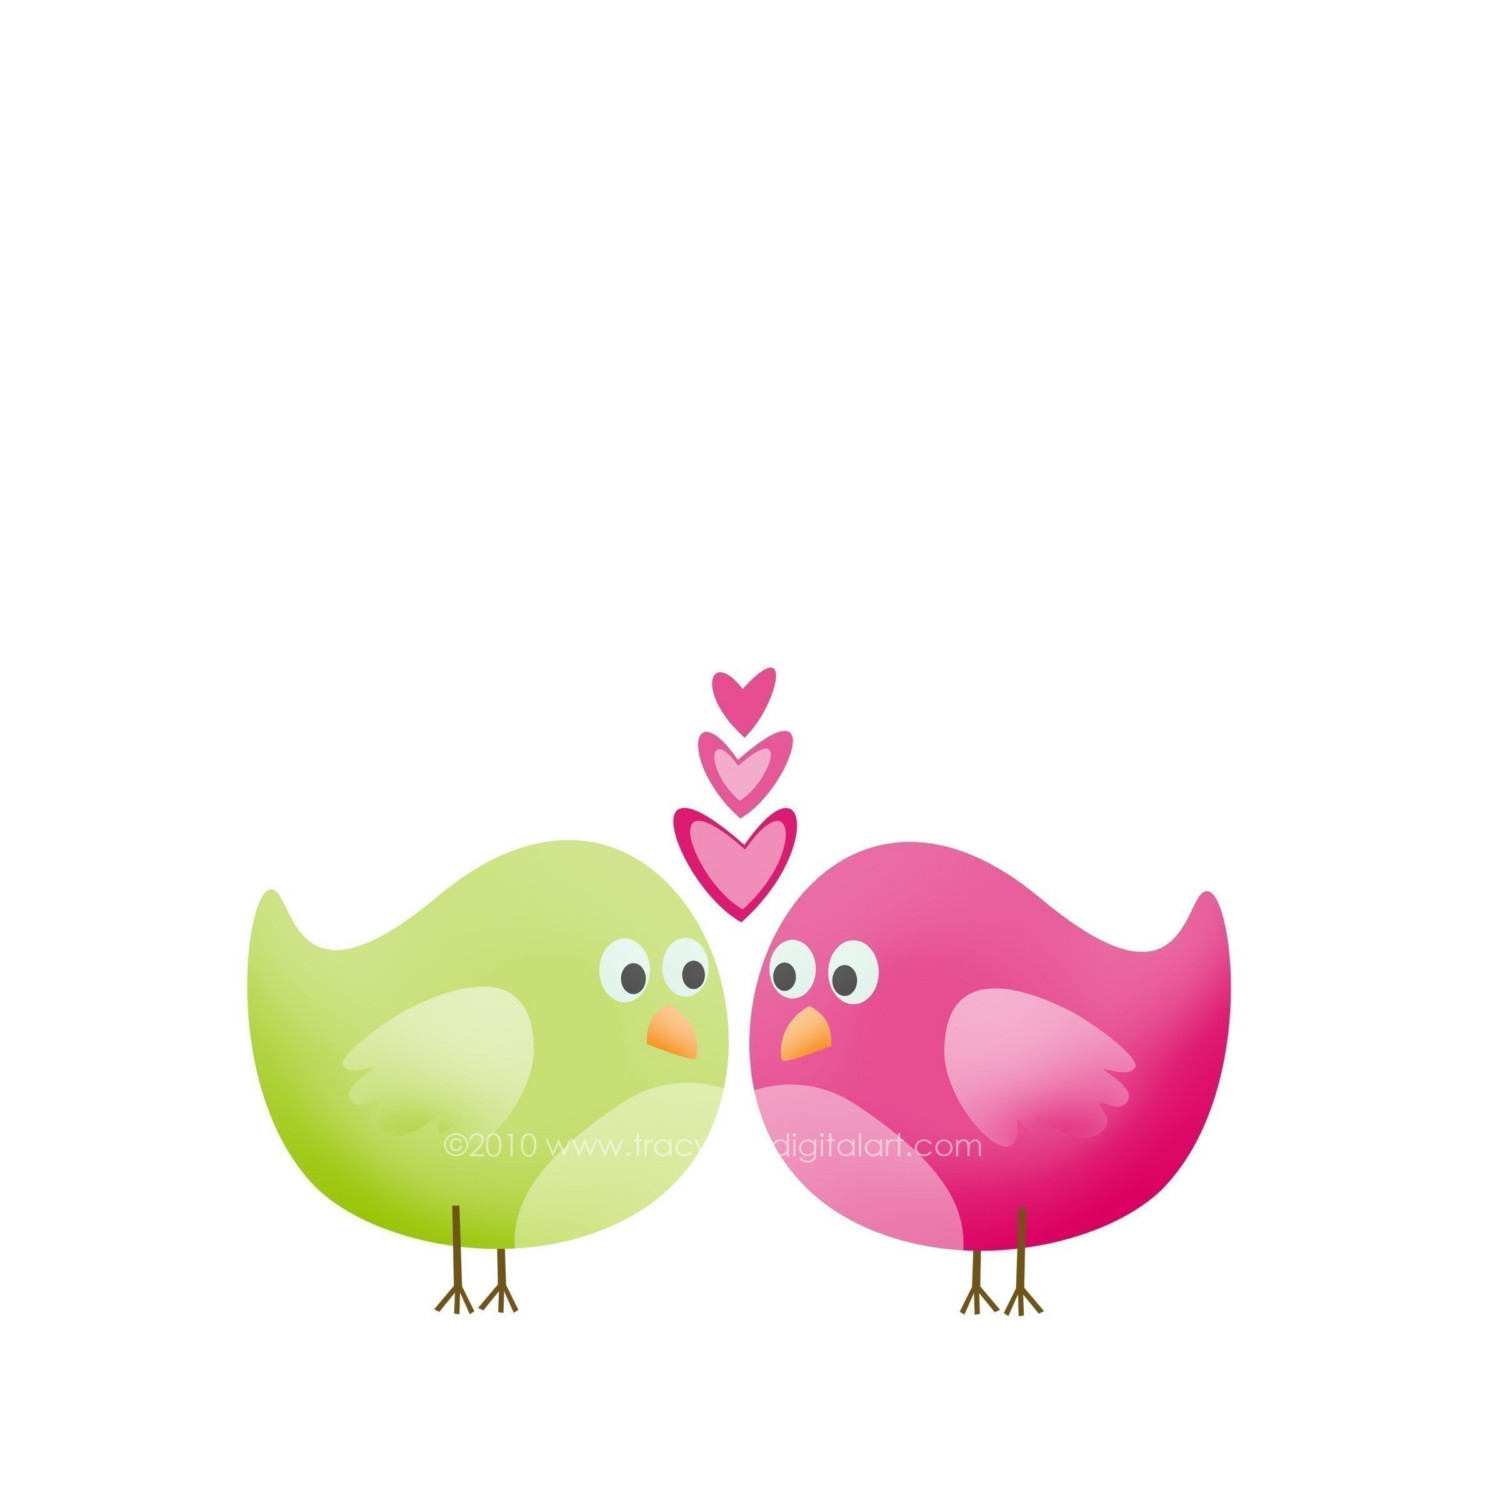 Love bird clip art - photo#10